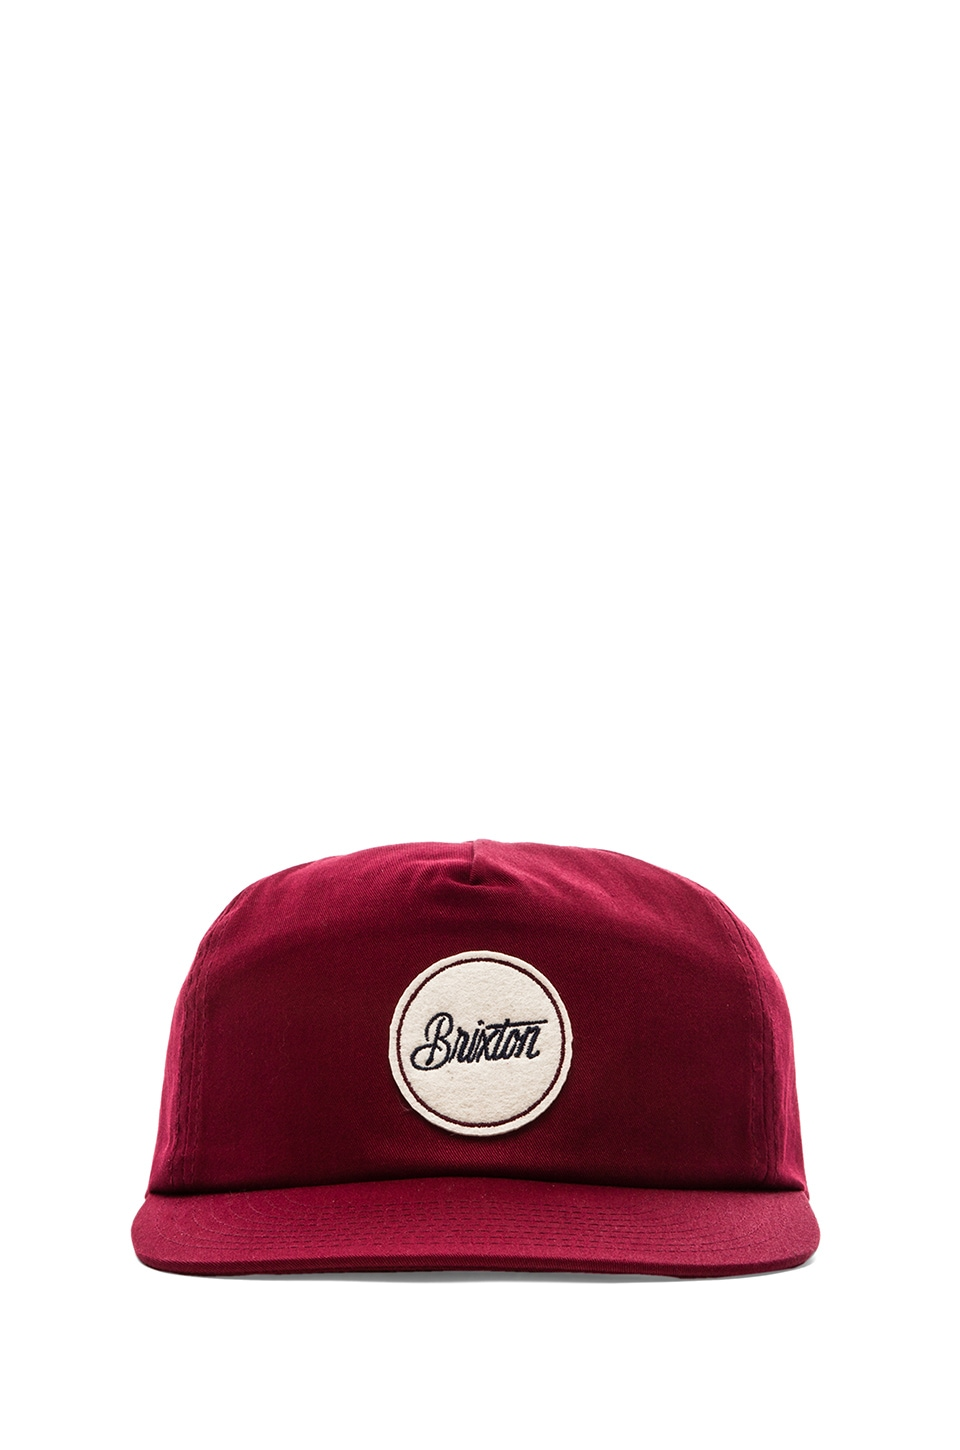 Brixton Reed Cap in Burgundy